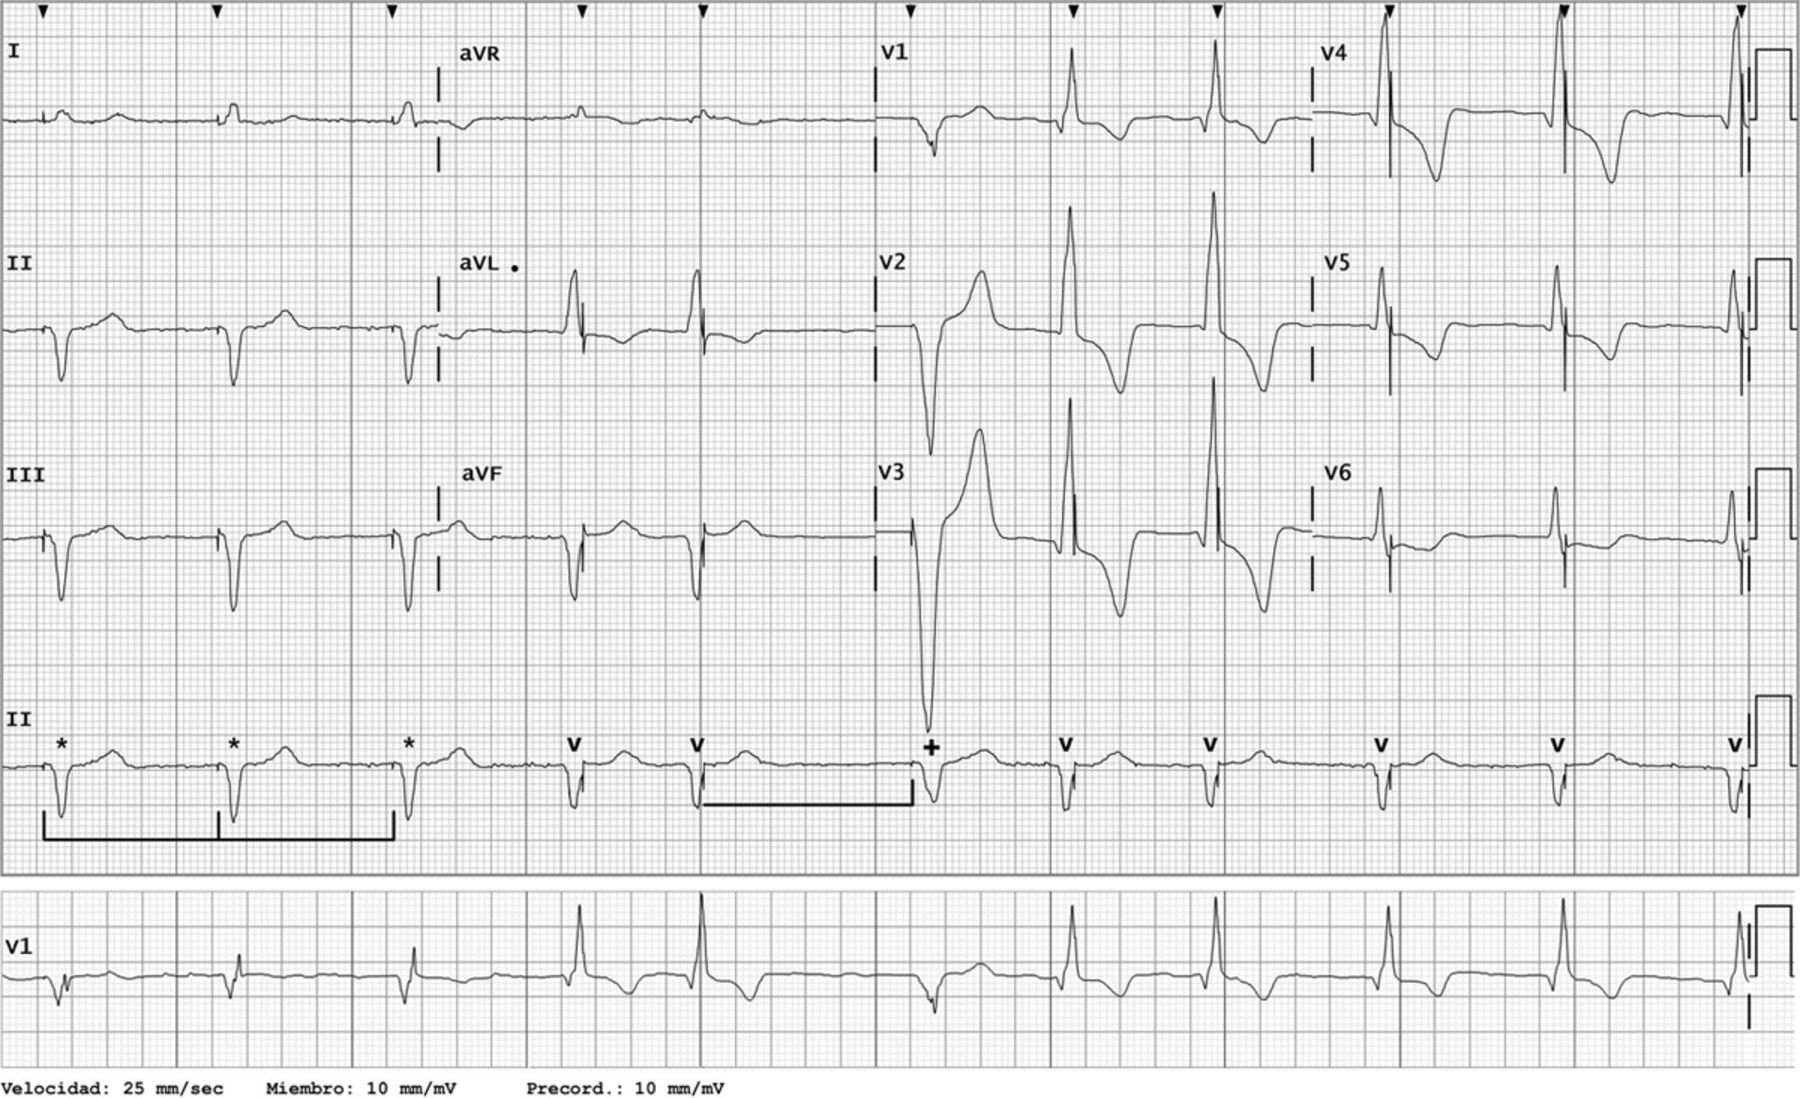 Is This Pacemaker Functioning Abnormally